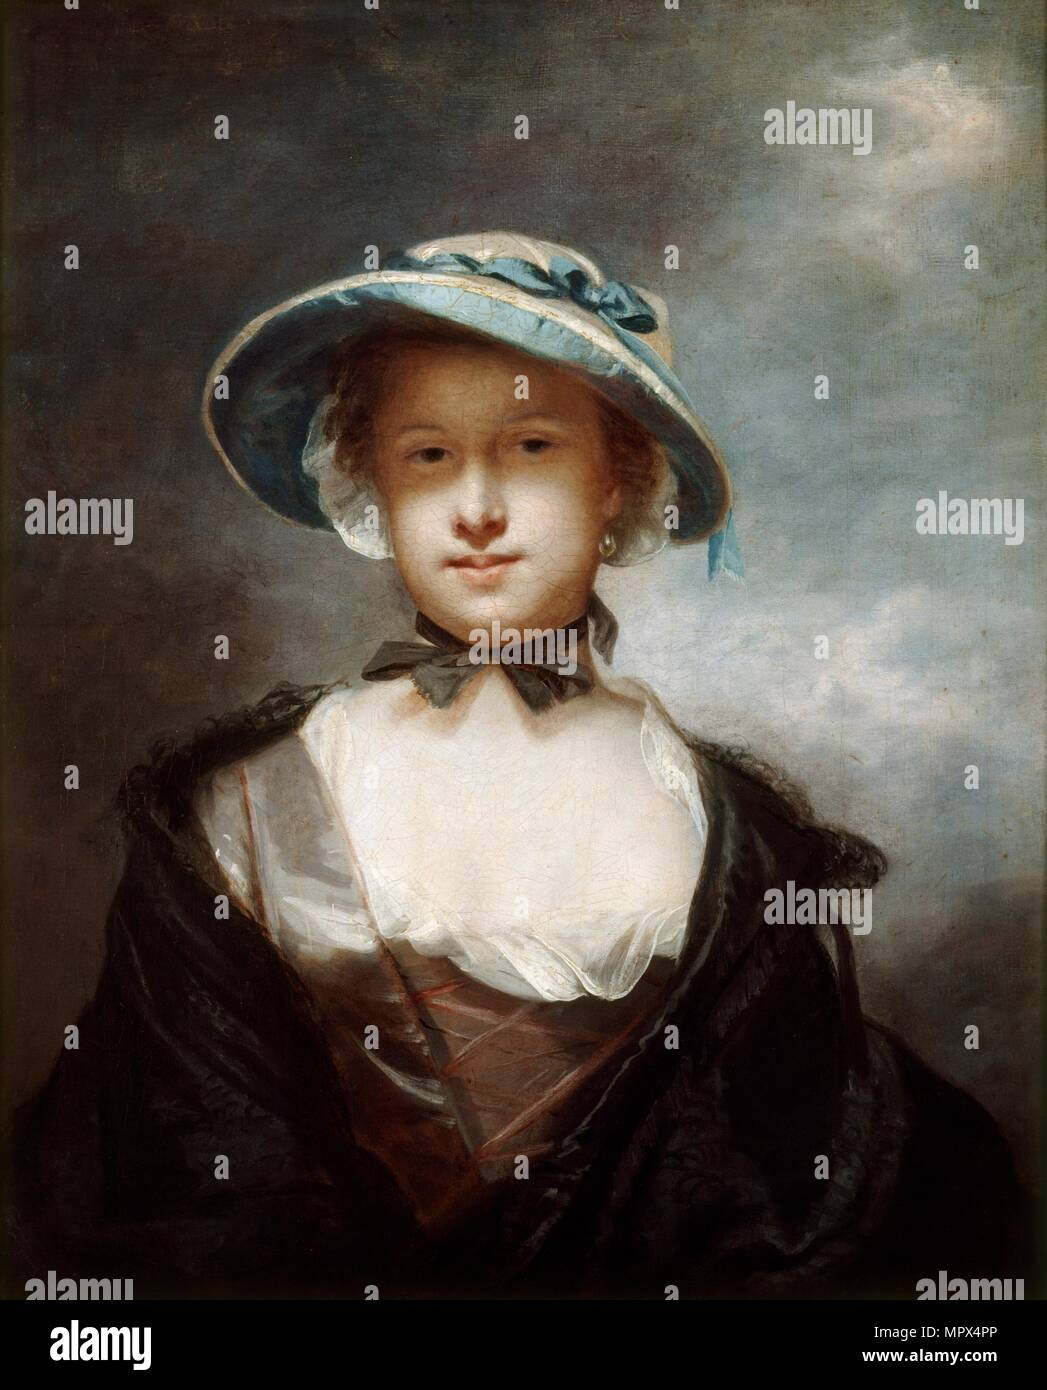 Catherine, Lady Chambers, wife of Sir William Chambers, 1752-1756. Artist: Sir Joshua Reynolds. - Stock Image